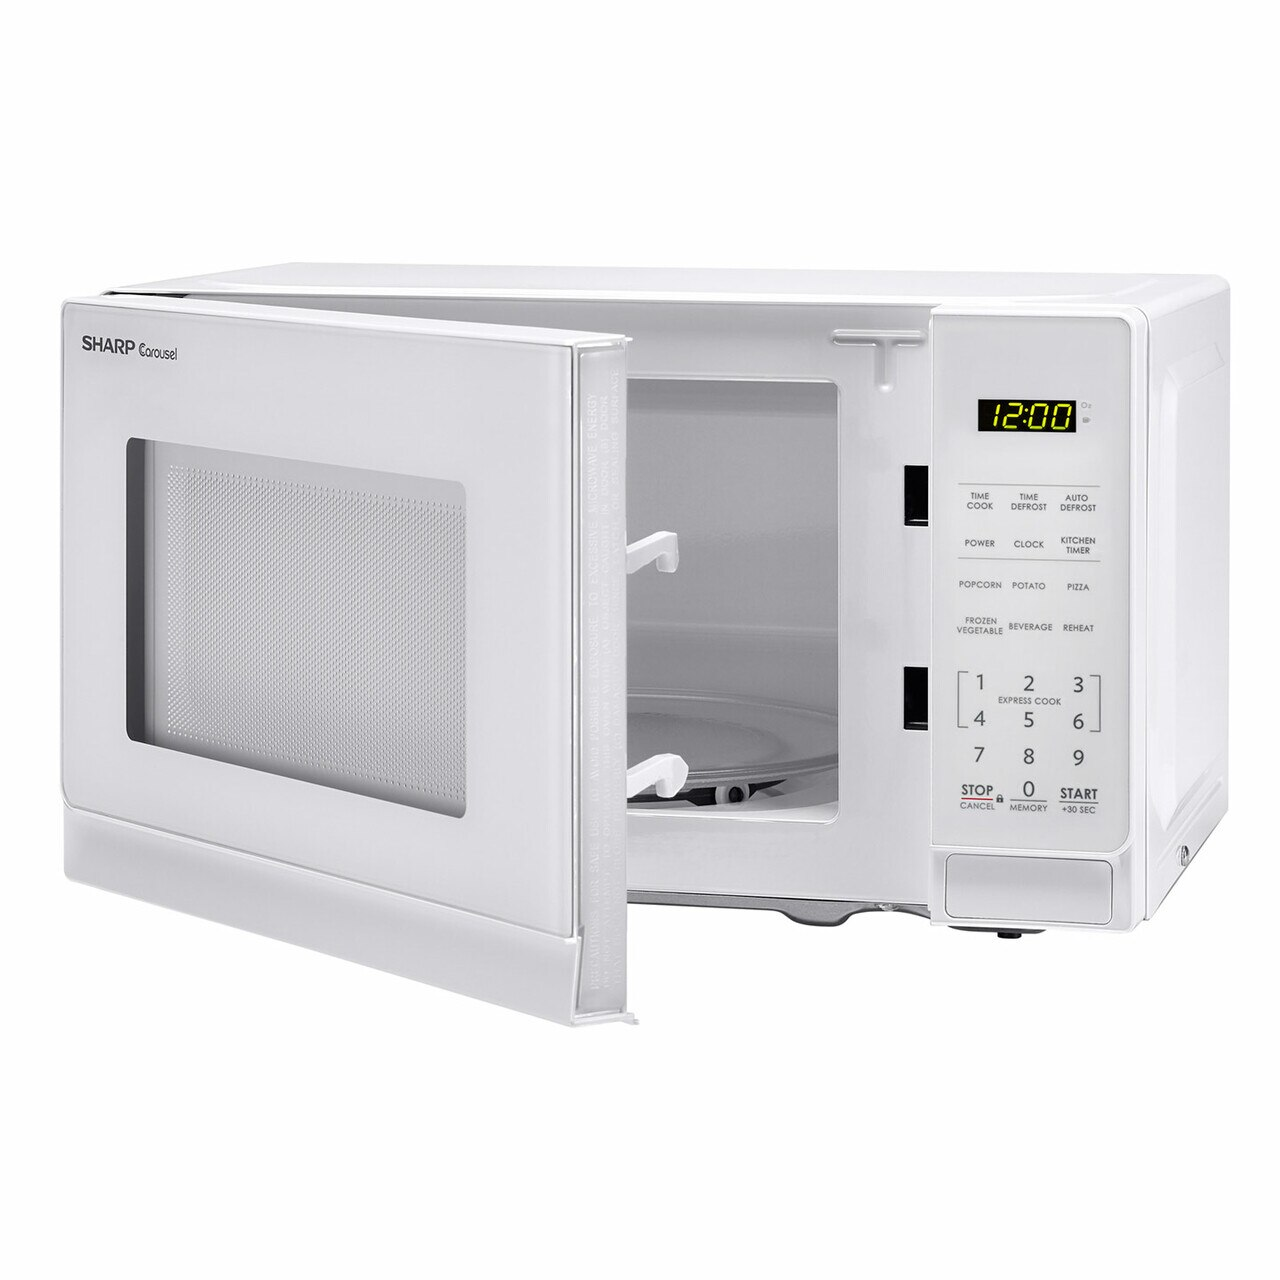 0.7 cu. ft. Sharp White Countertop Microwave (SMC0710BW) – left angle view with door open